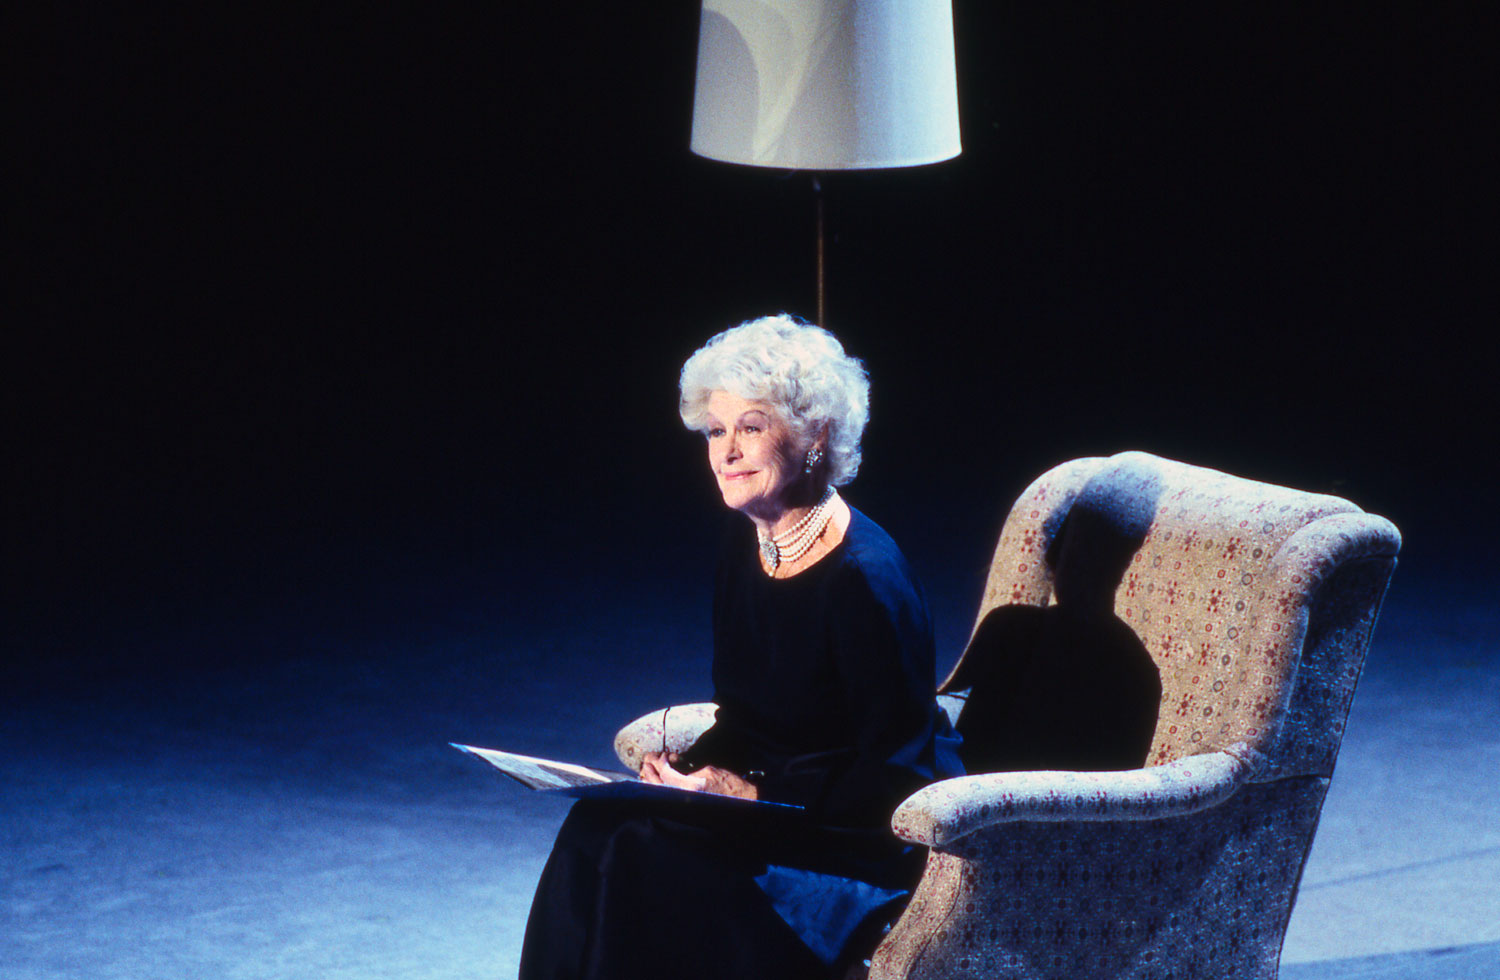 Elaine Stritch performs at the Kennedy Center Honors on October 29, 1994.